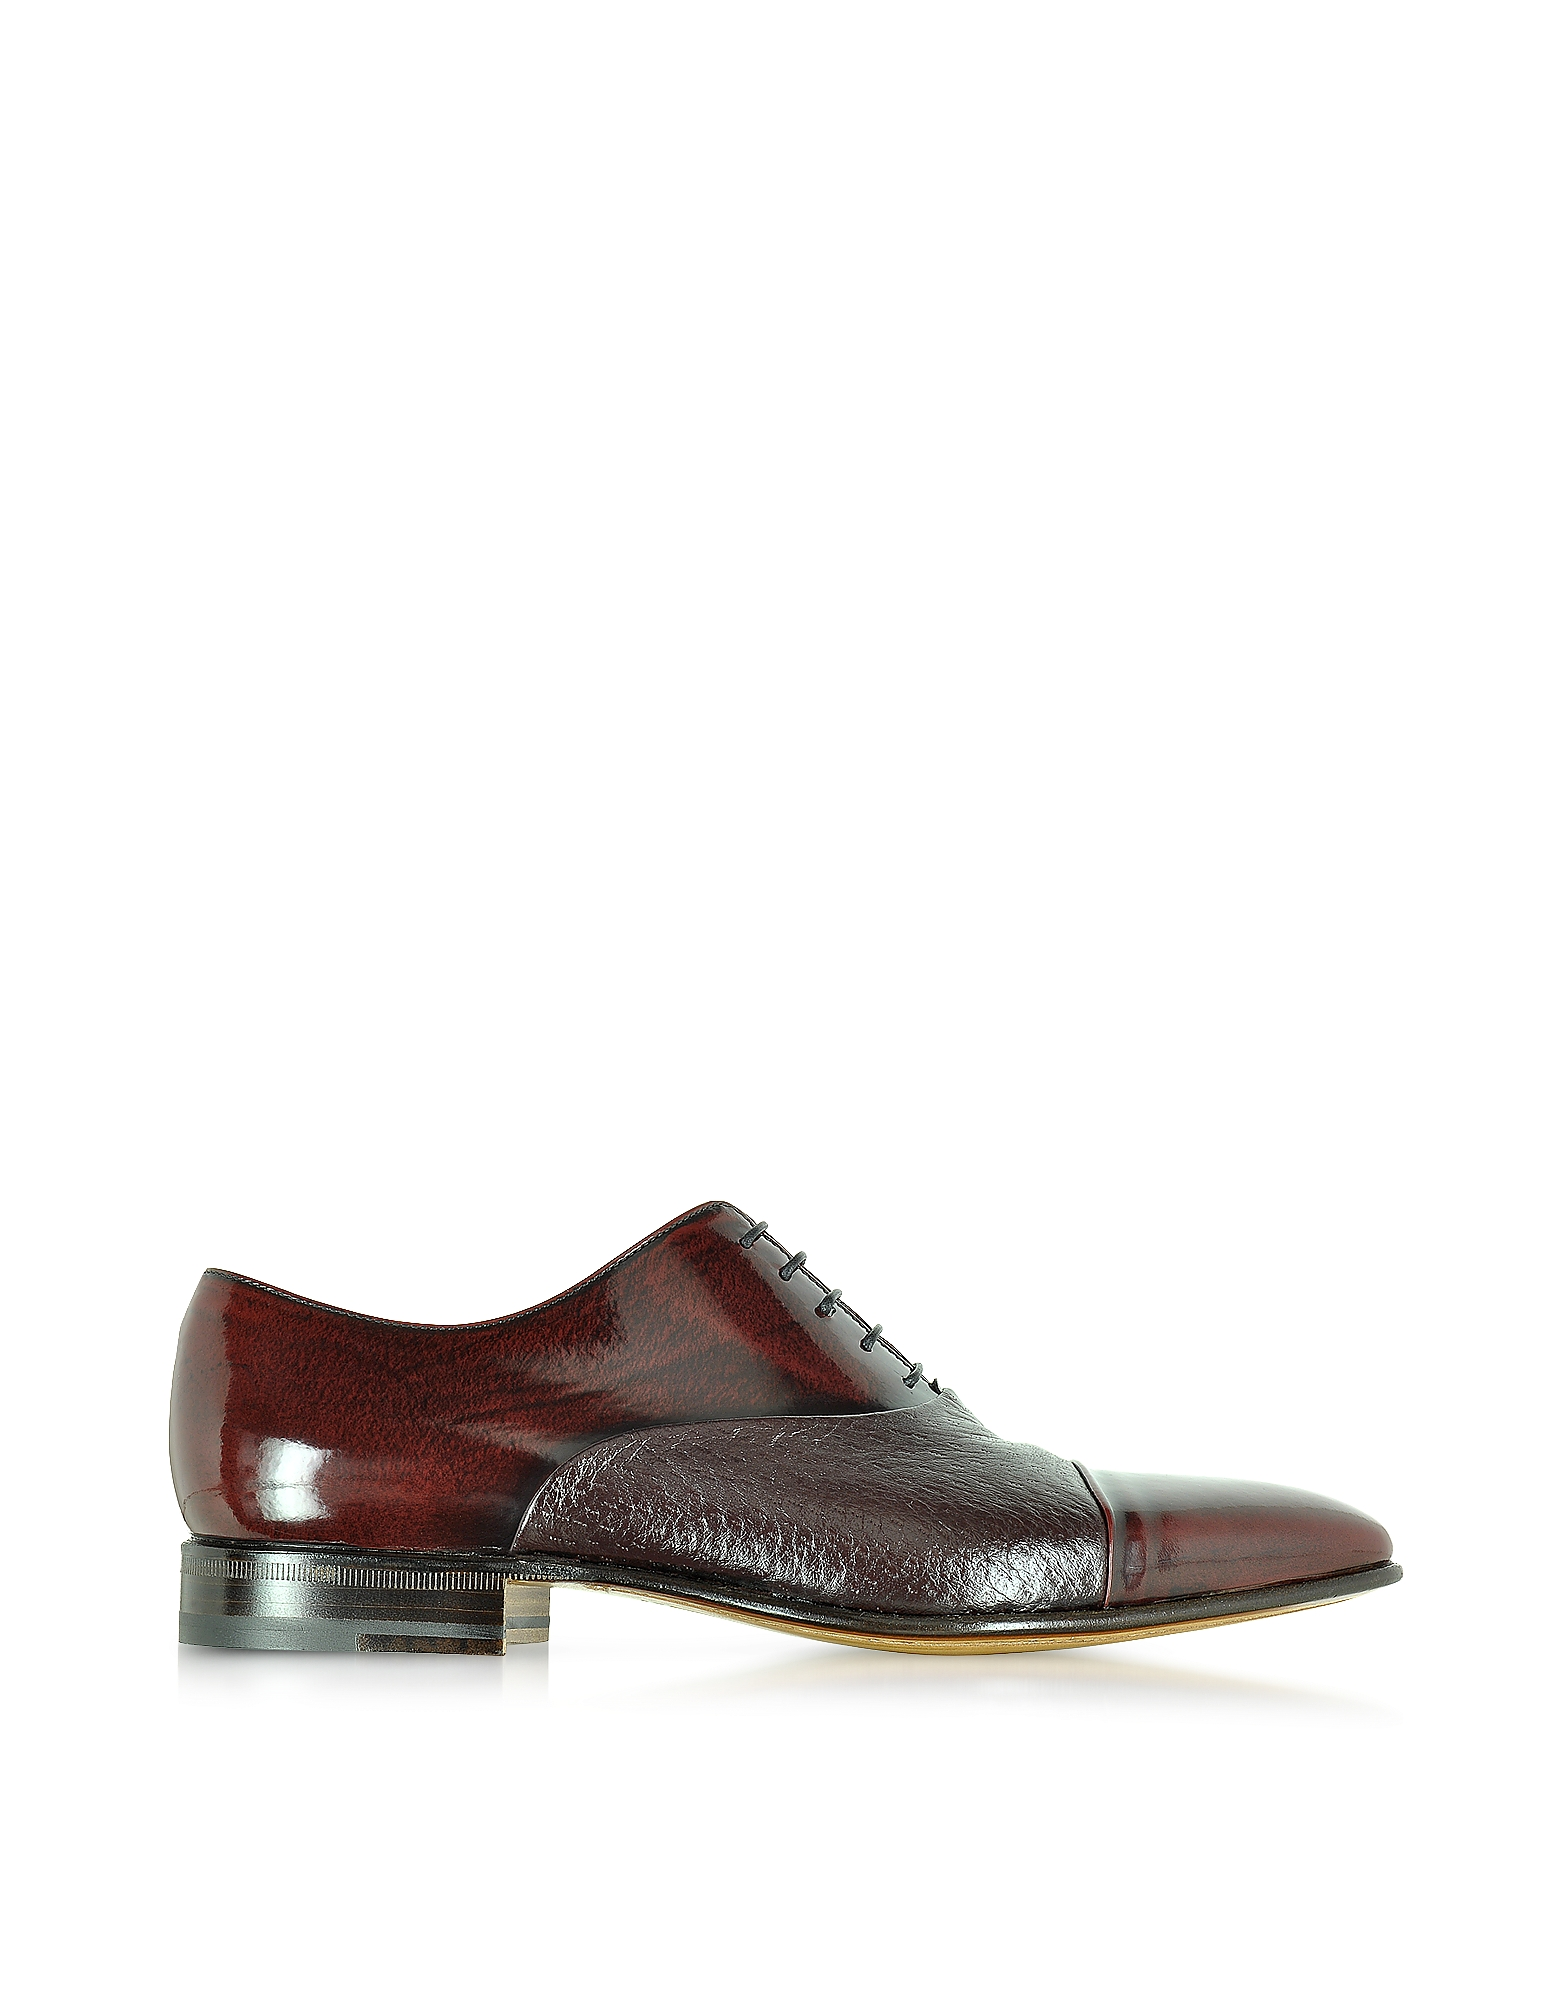 Moreschi Shoes, Digione Burgundy Peccary and Calf Leather Oxford Shoes